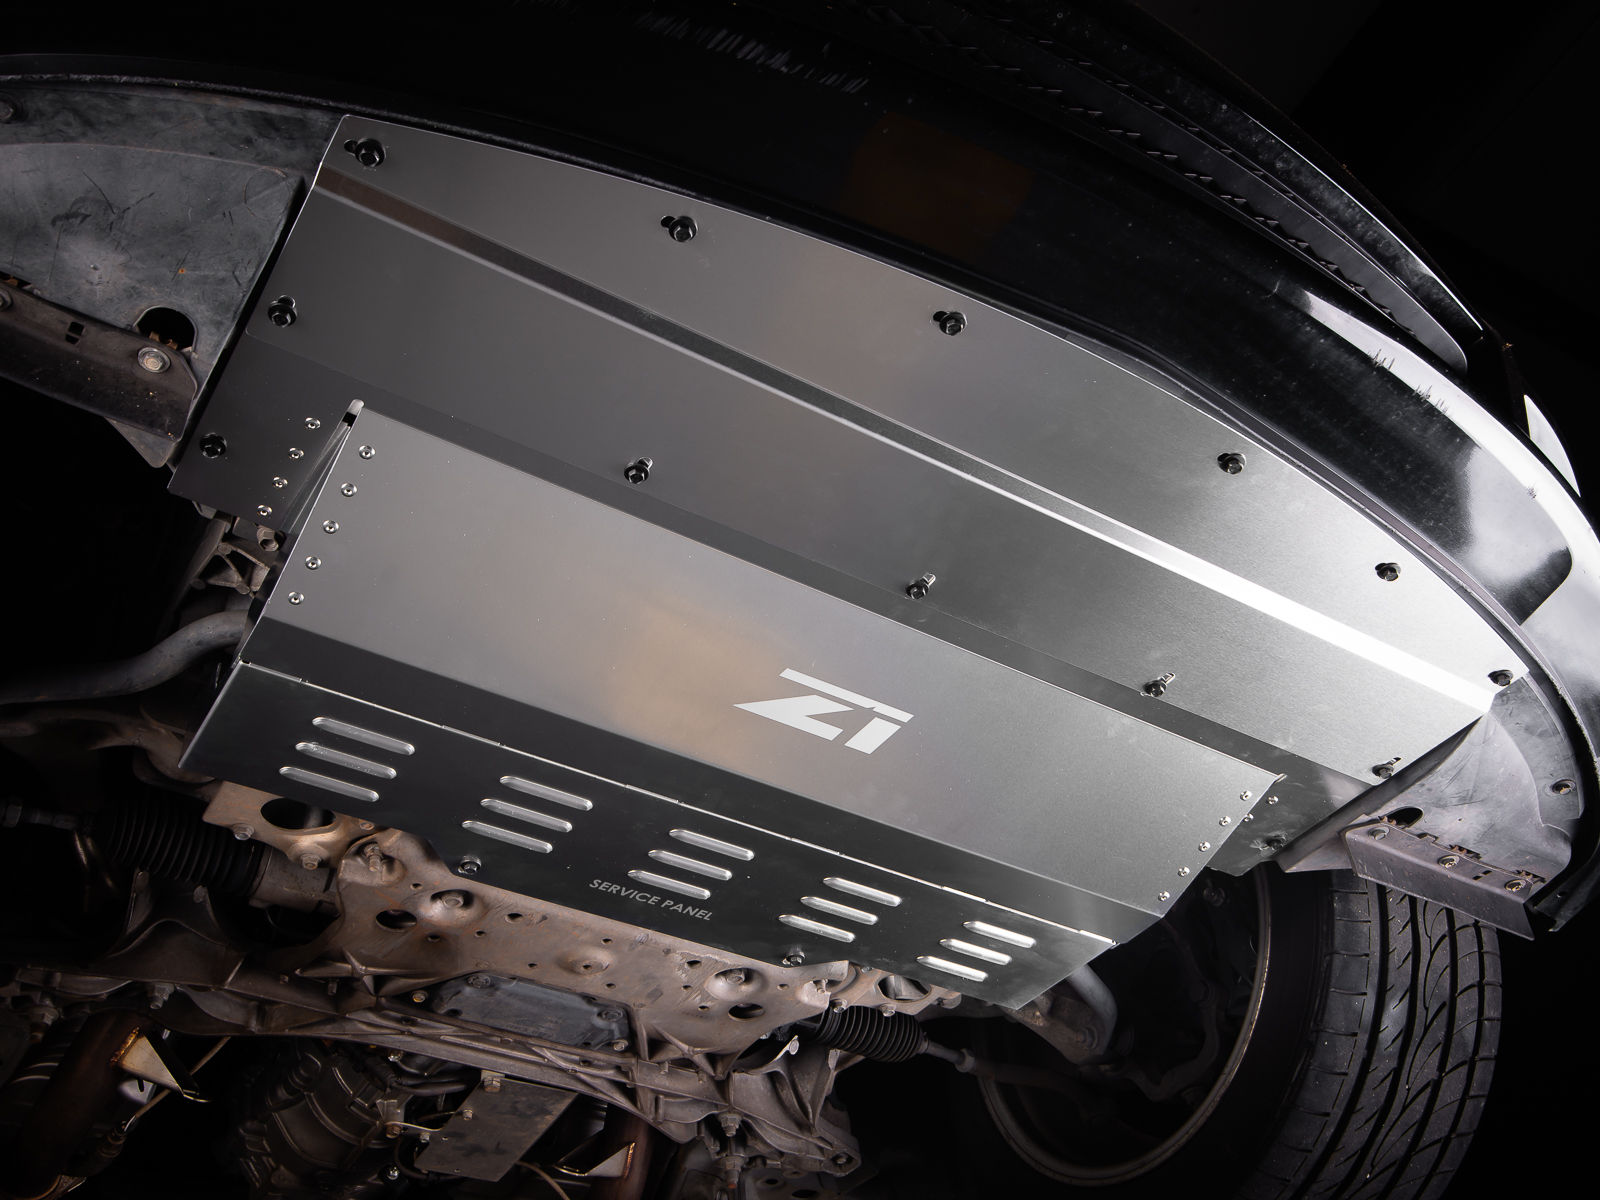 z1 Undershrouds Affordable, easy maintenance, lightweight, and durable. Our Z1 aluminum undershrouds provide it all!